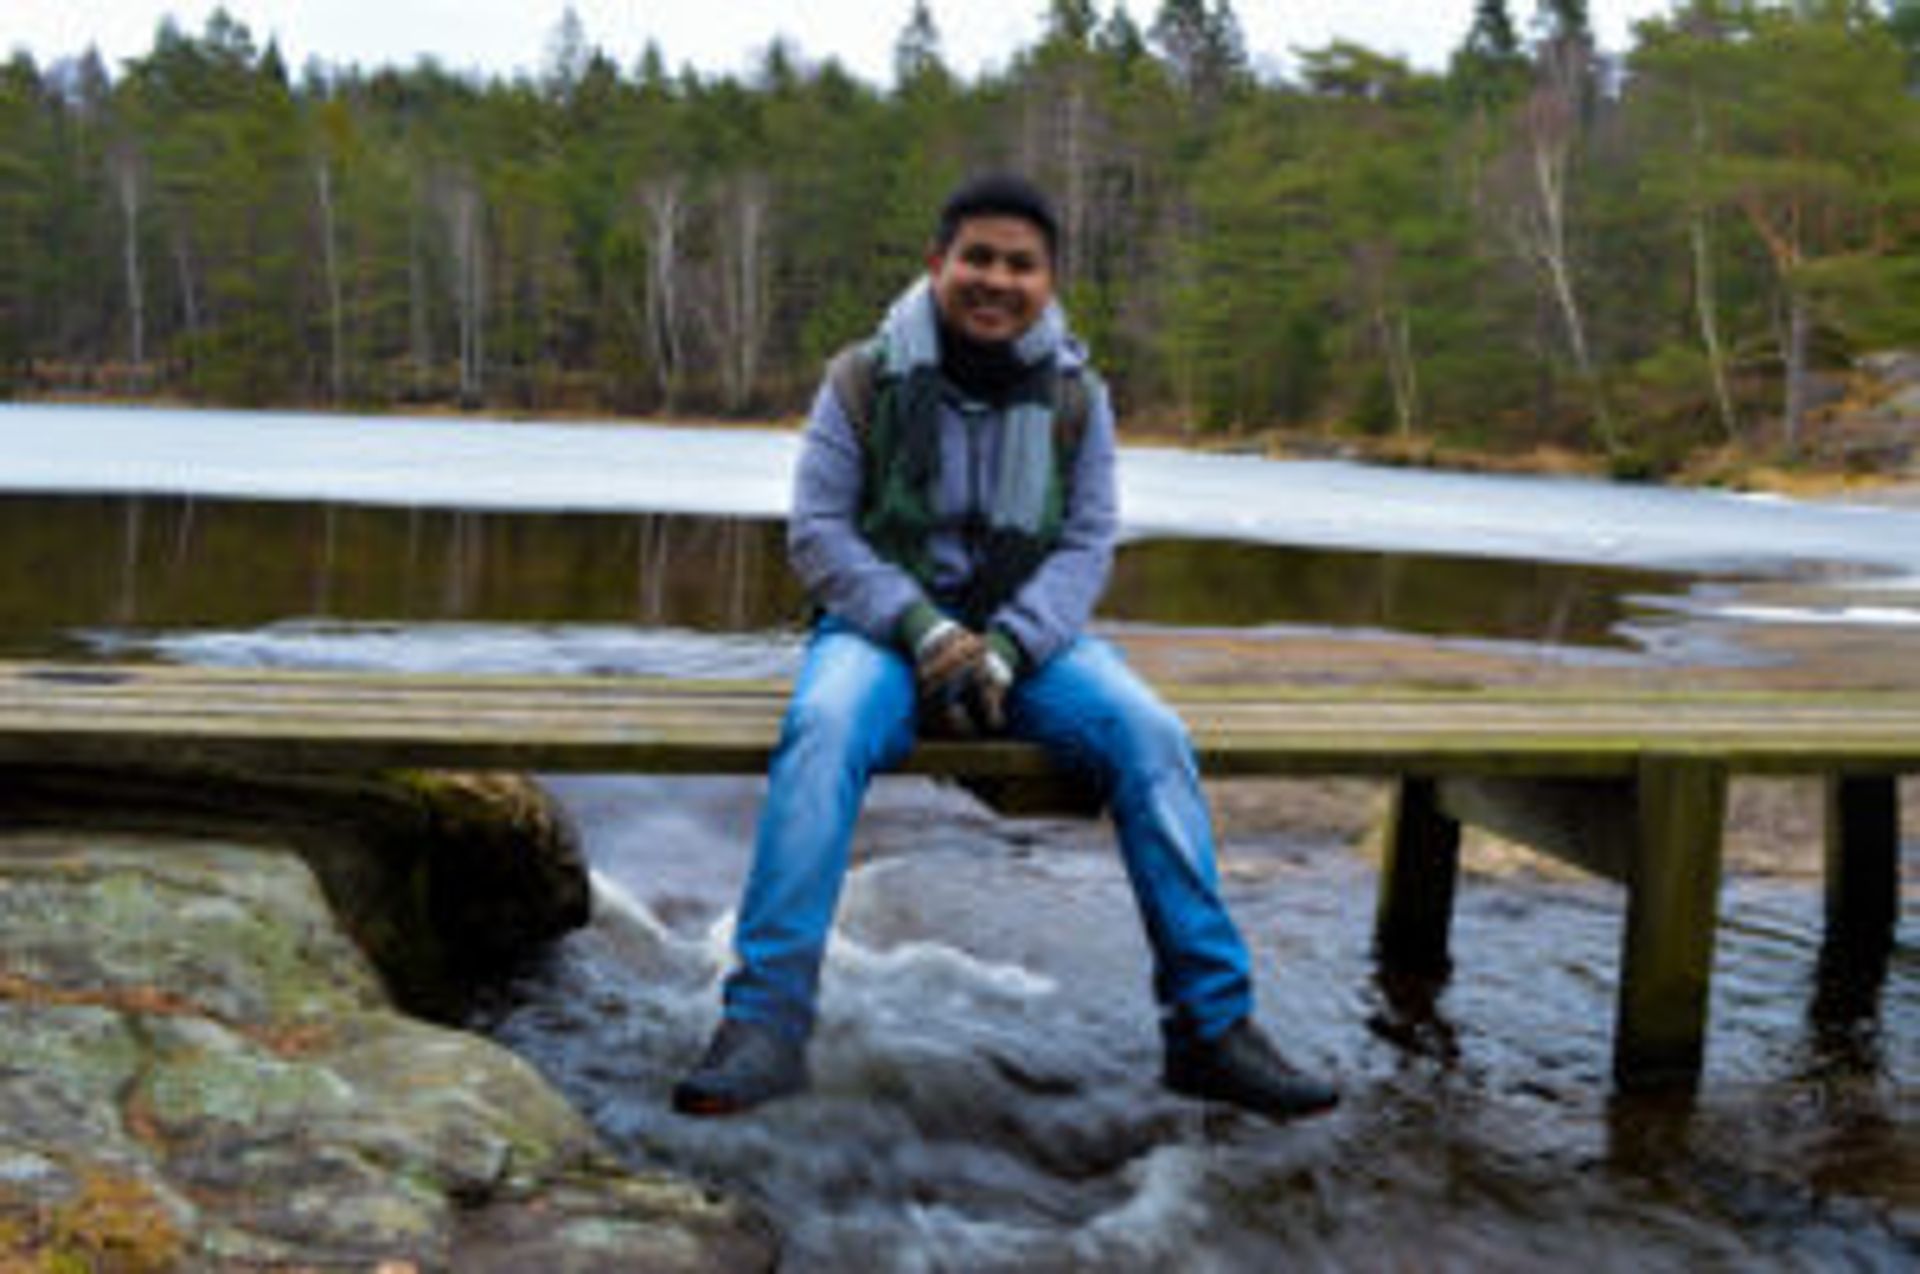 Camilo sitting on a small, wooden footbridge by a lake outside of Gothenburg.